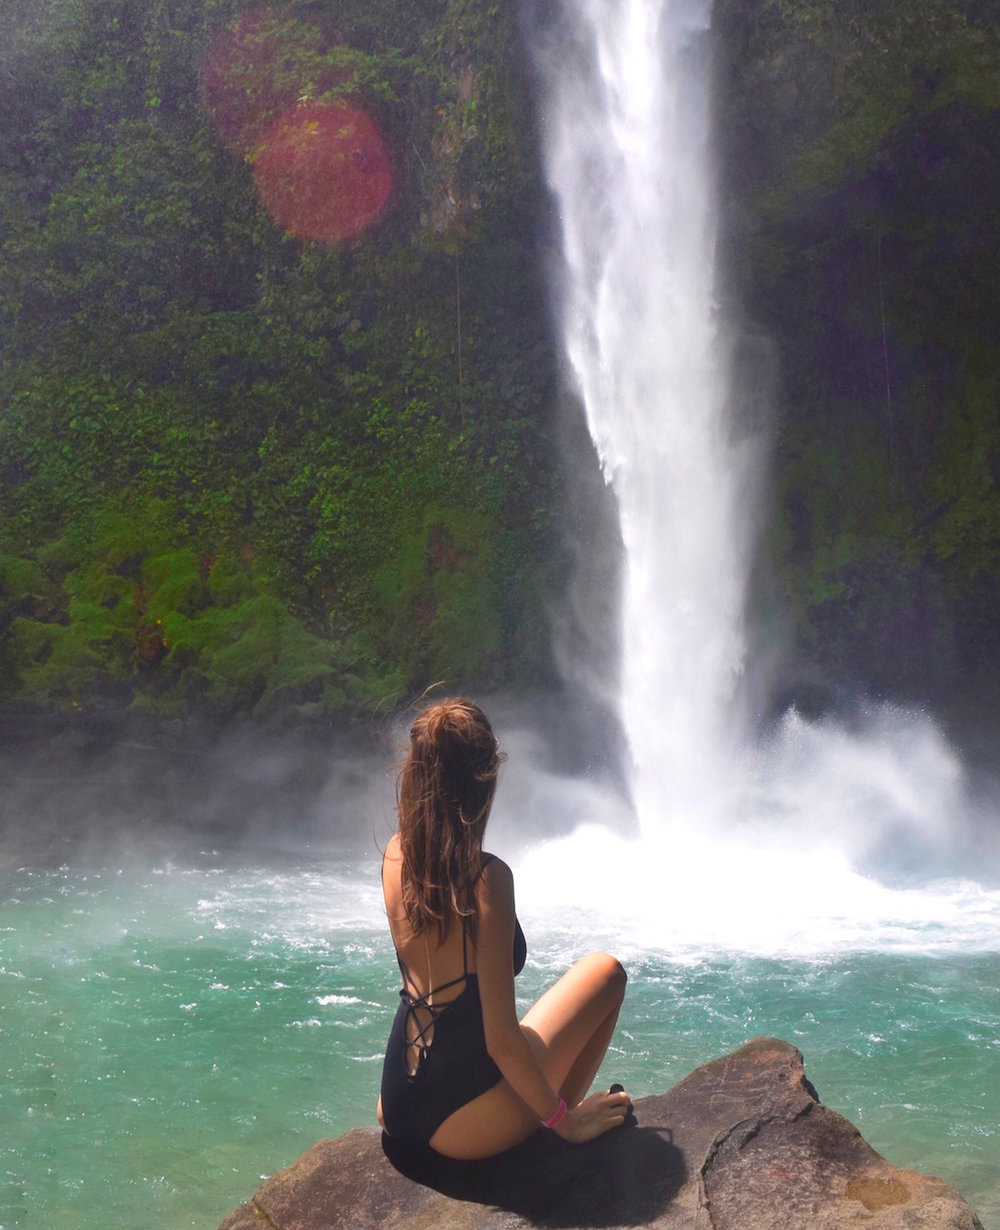 Enjoy so many waterfalls in costa Rica.   One of the best things to do in Costa Rica.   Tessa Juliette | Travel Where to Next http://travelwheretonext.com